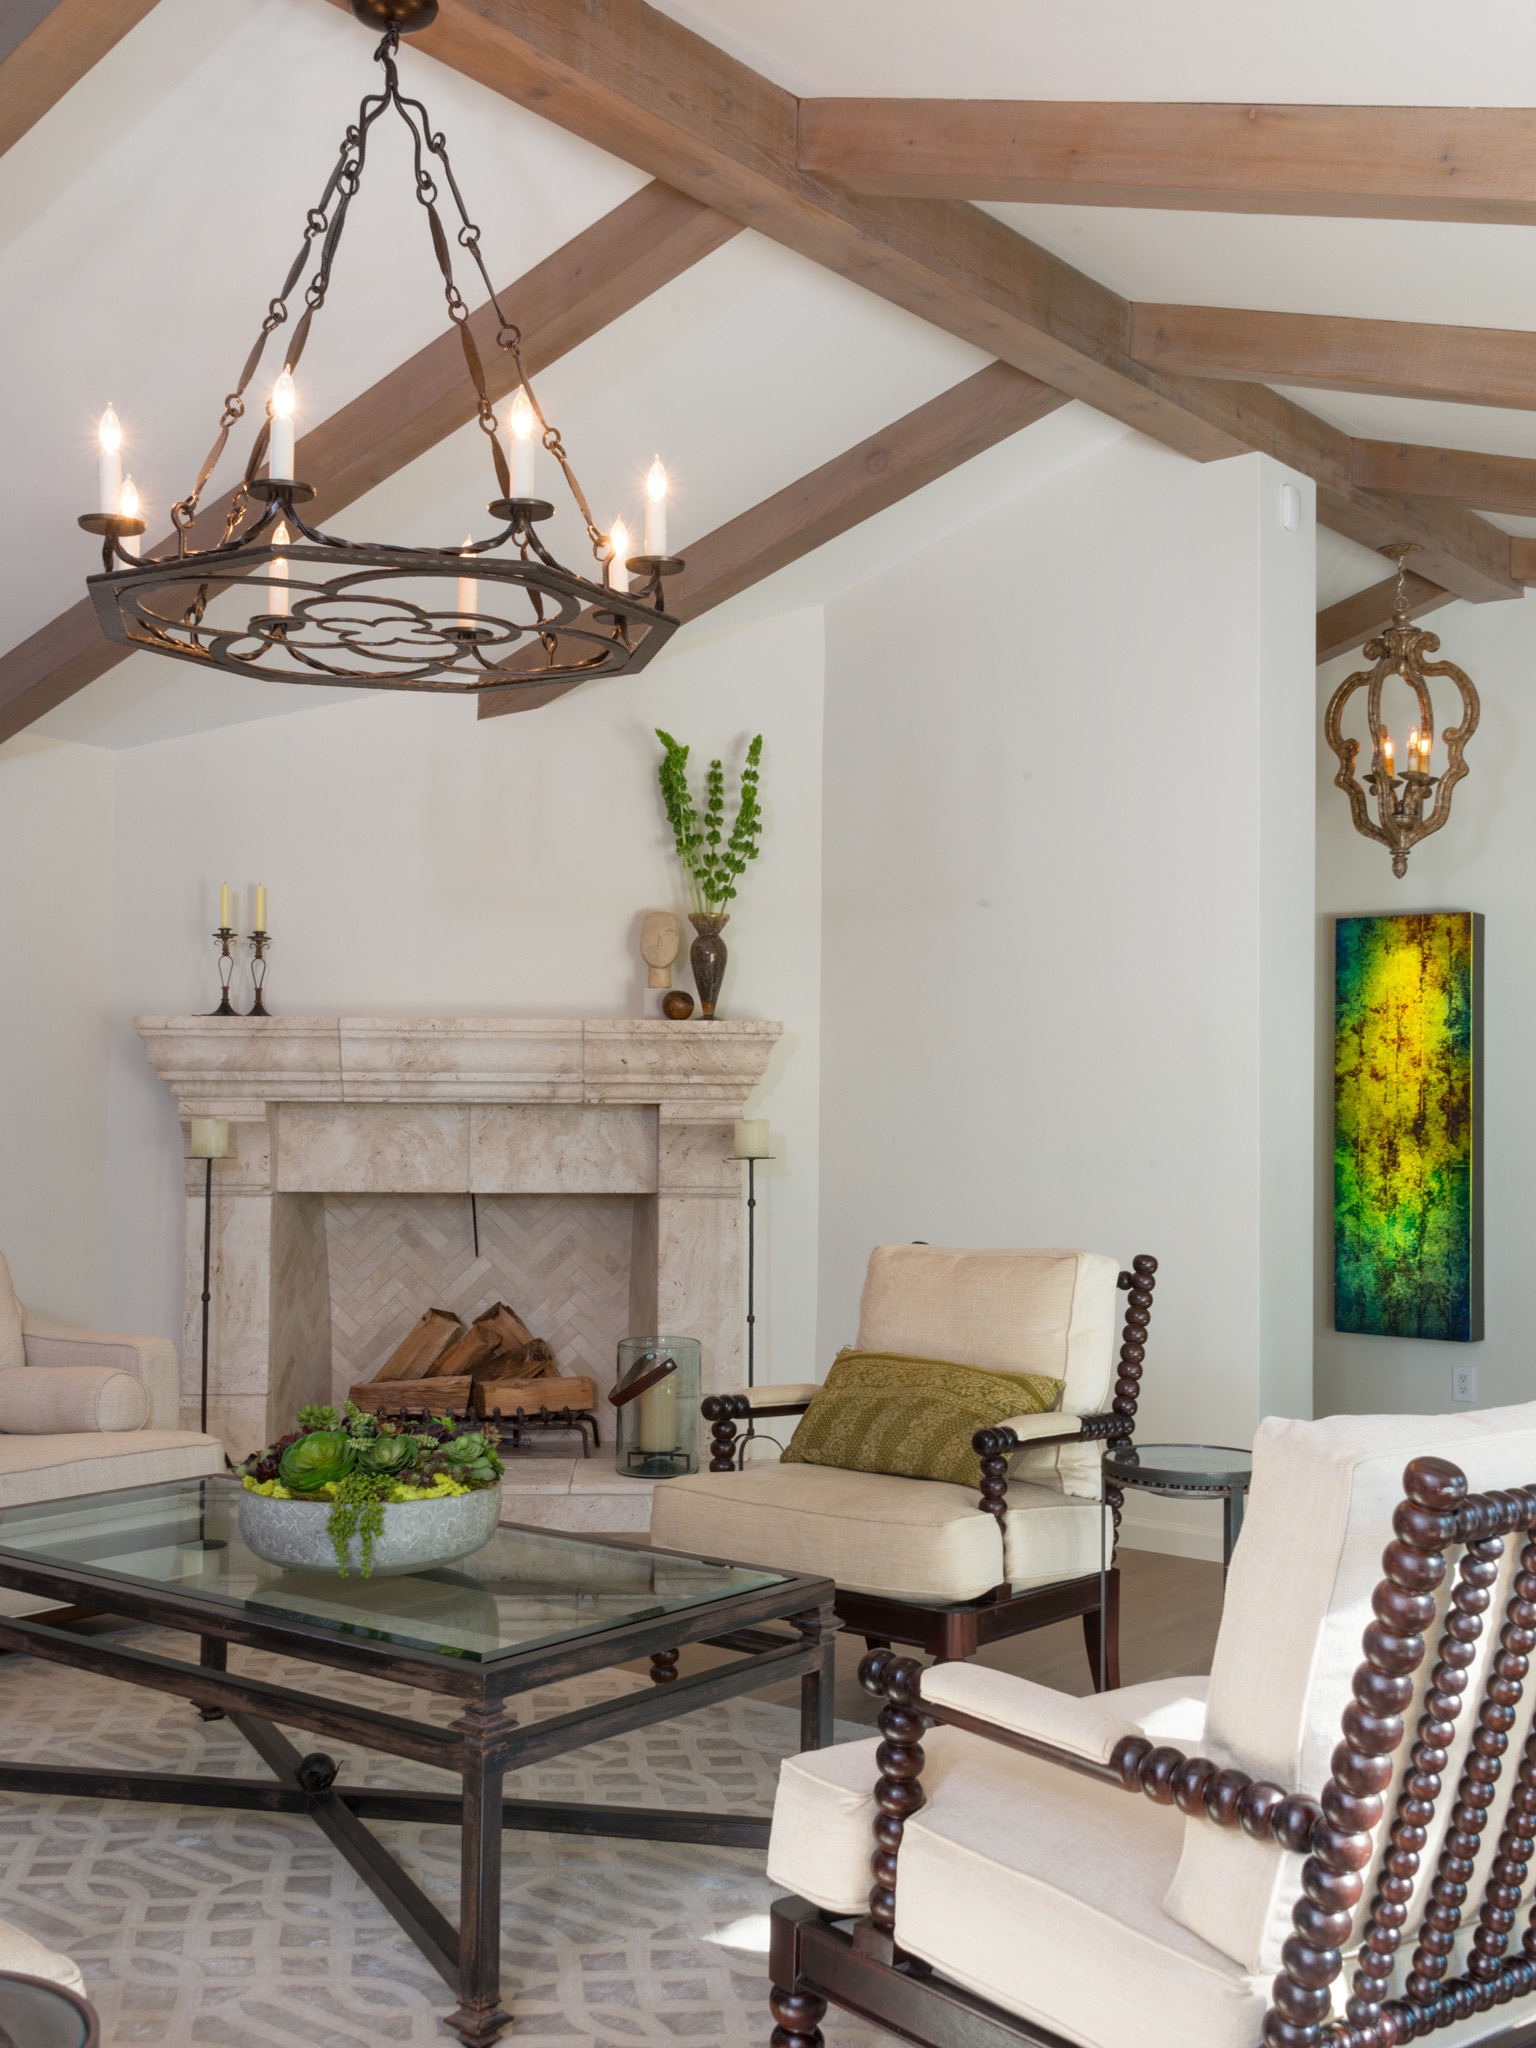 Mediterranean Style Living Room Seating Area (Image 16 of 25)